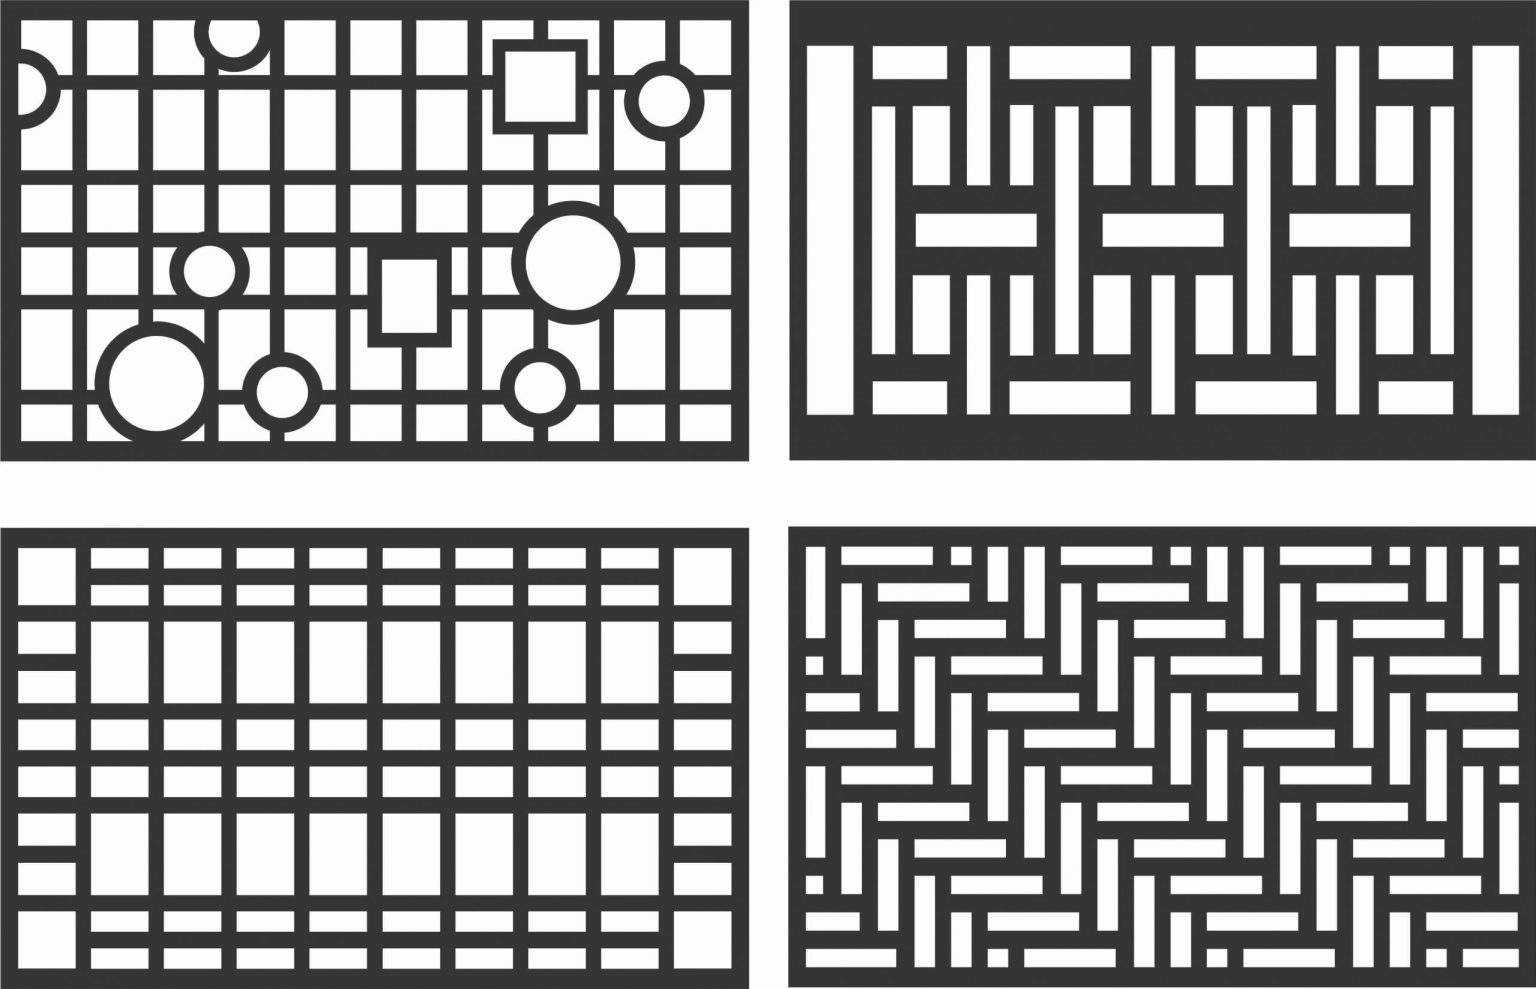 Floral Screen Patterns Design 86 Free DXF File